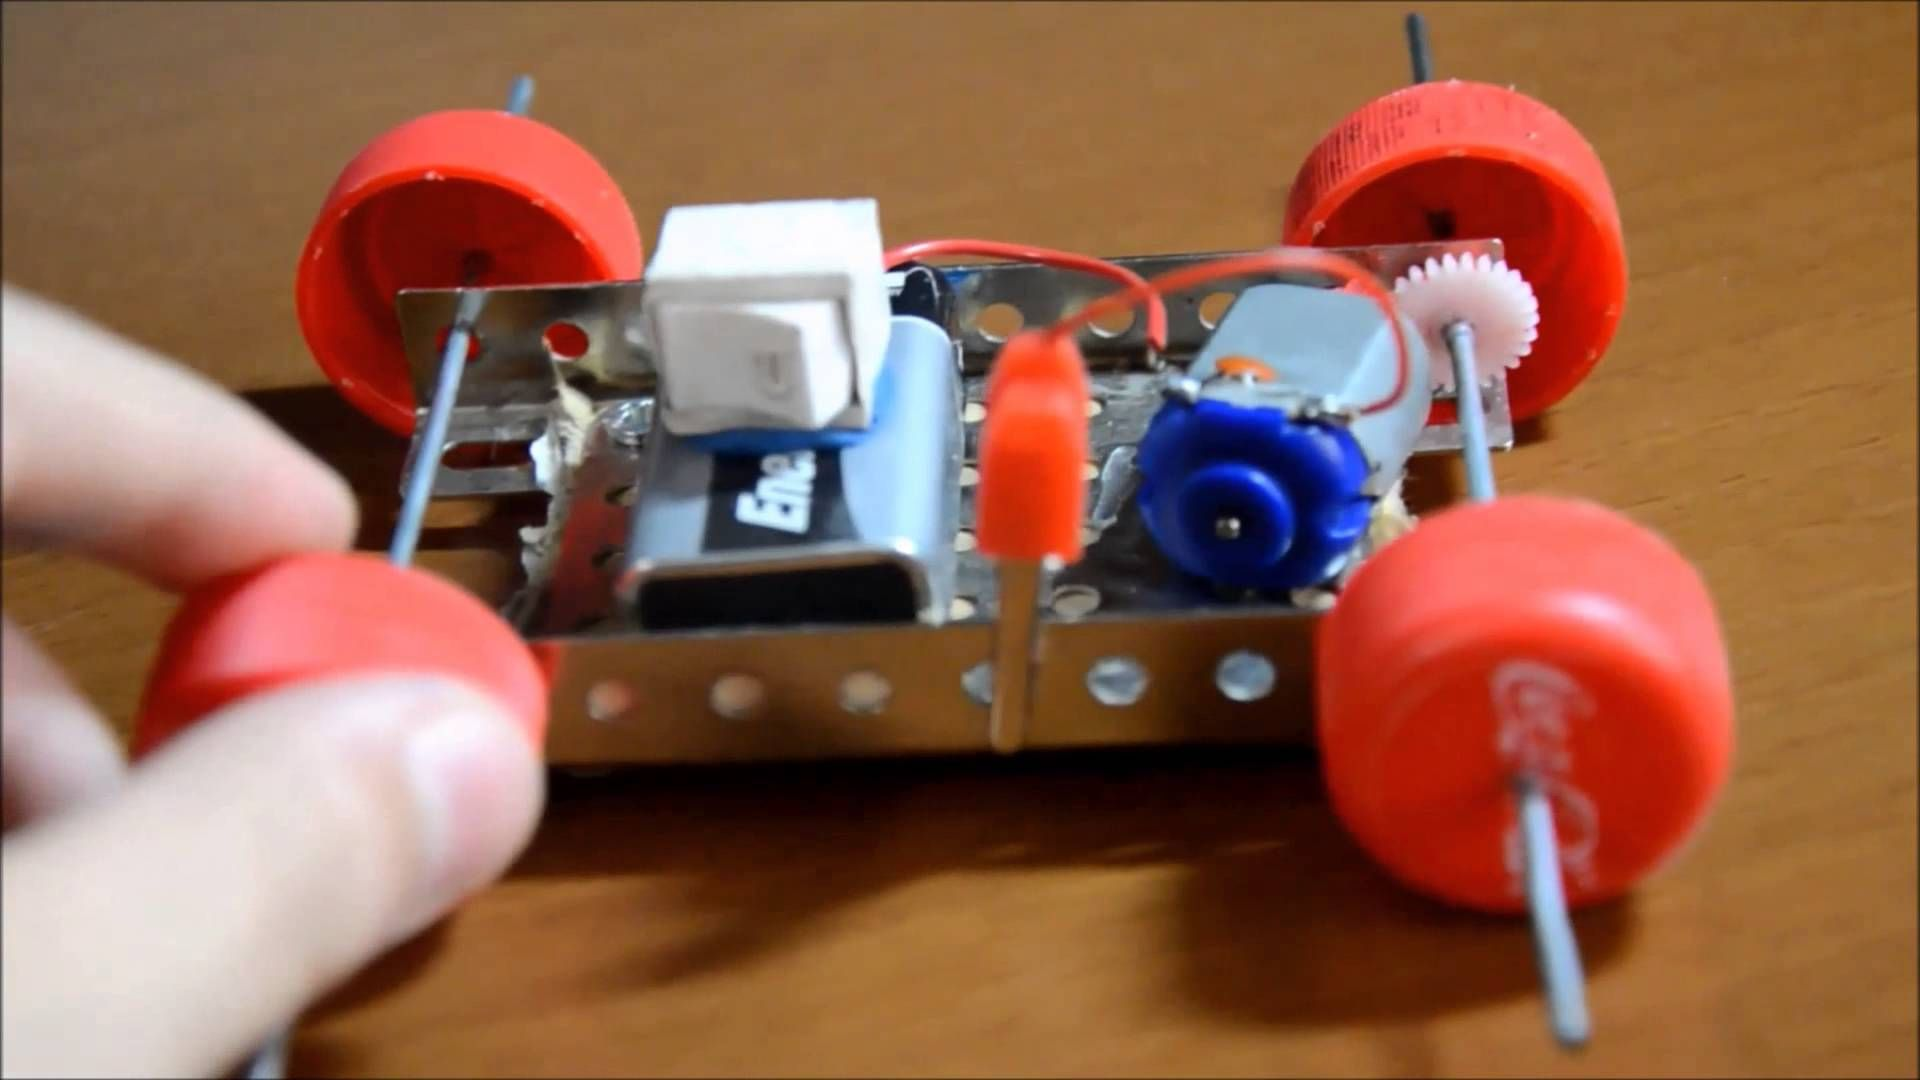 This is my electric car you can build in home conditions